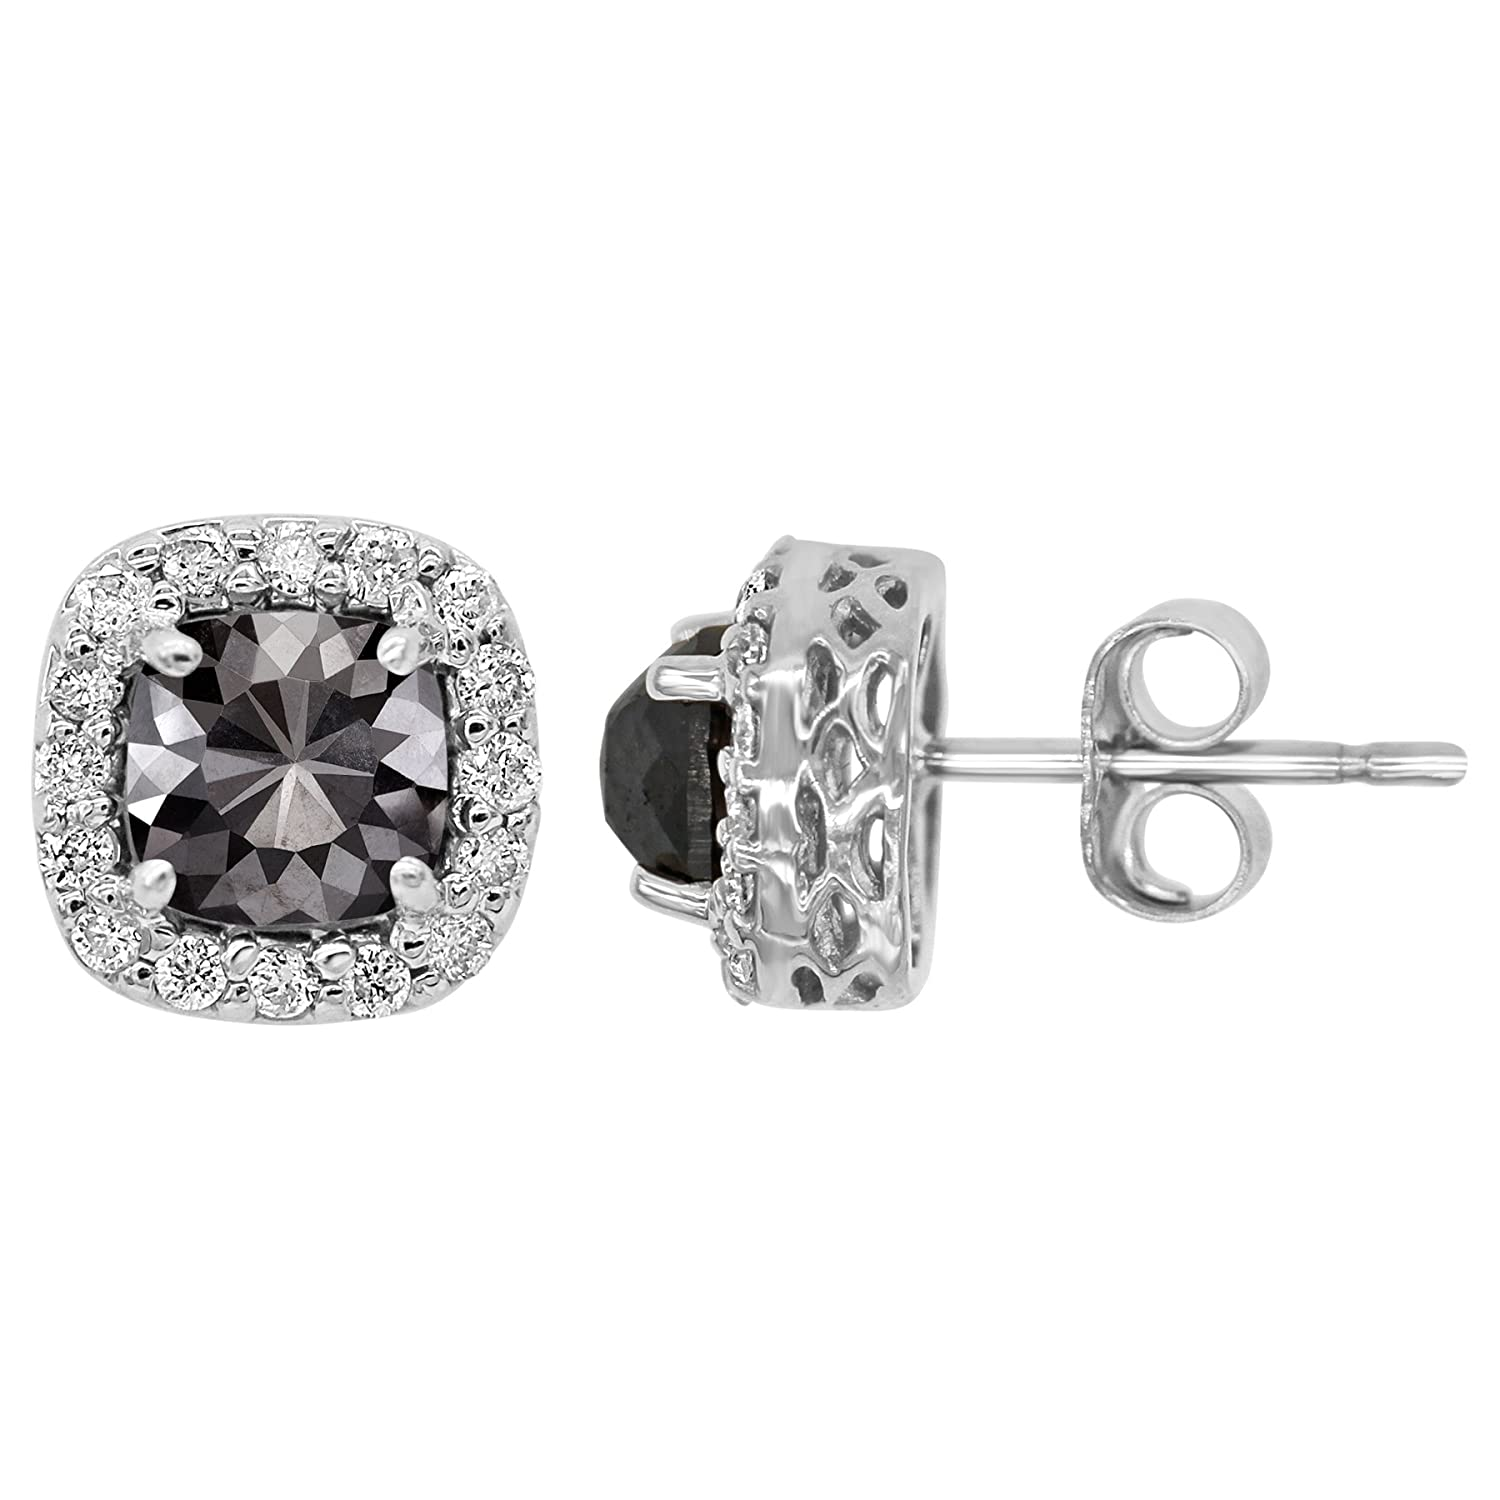 76dcb3f79 Amazon.com: 14k White Gold Black and White Diamond 1.75ct total Weight Stud  Earrings: Jewelry